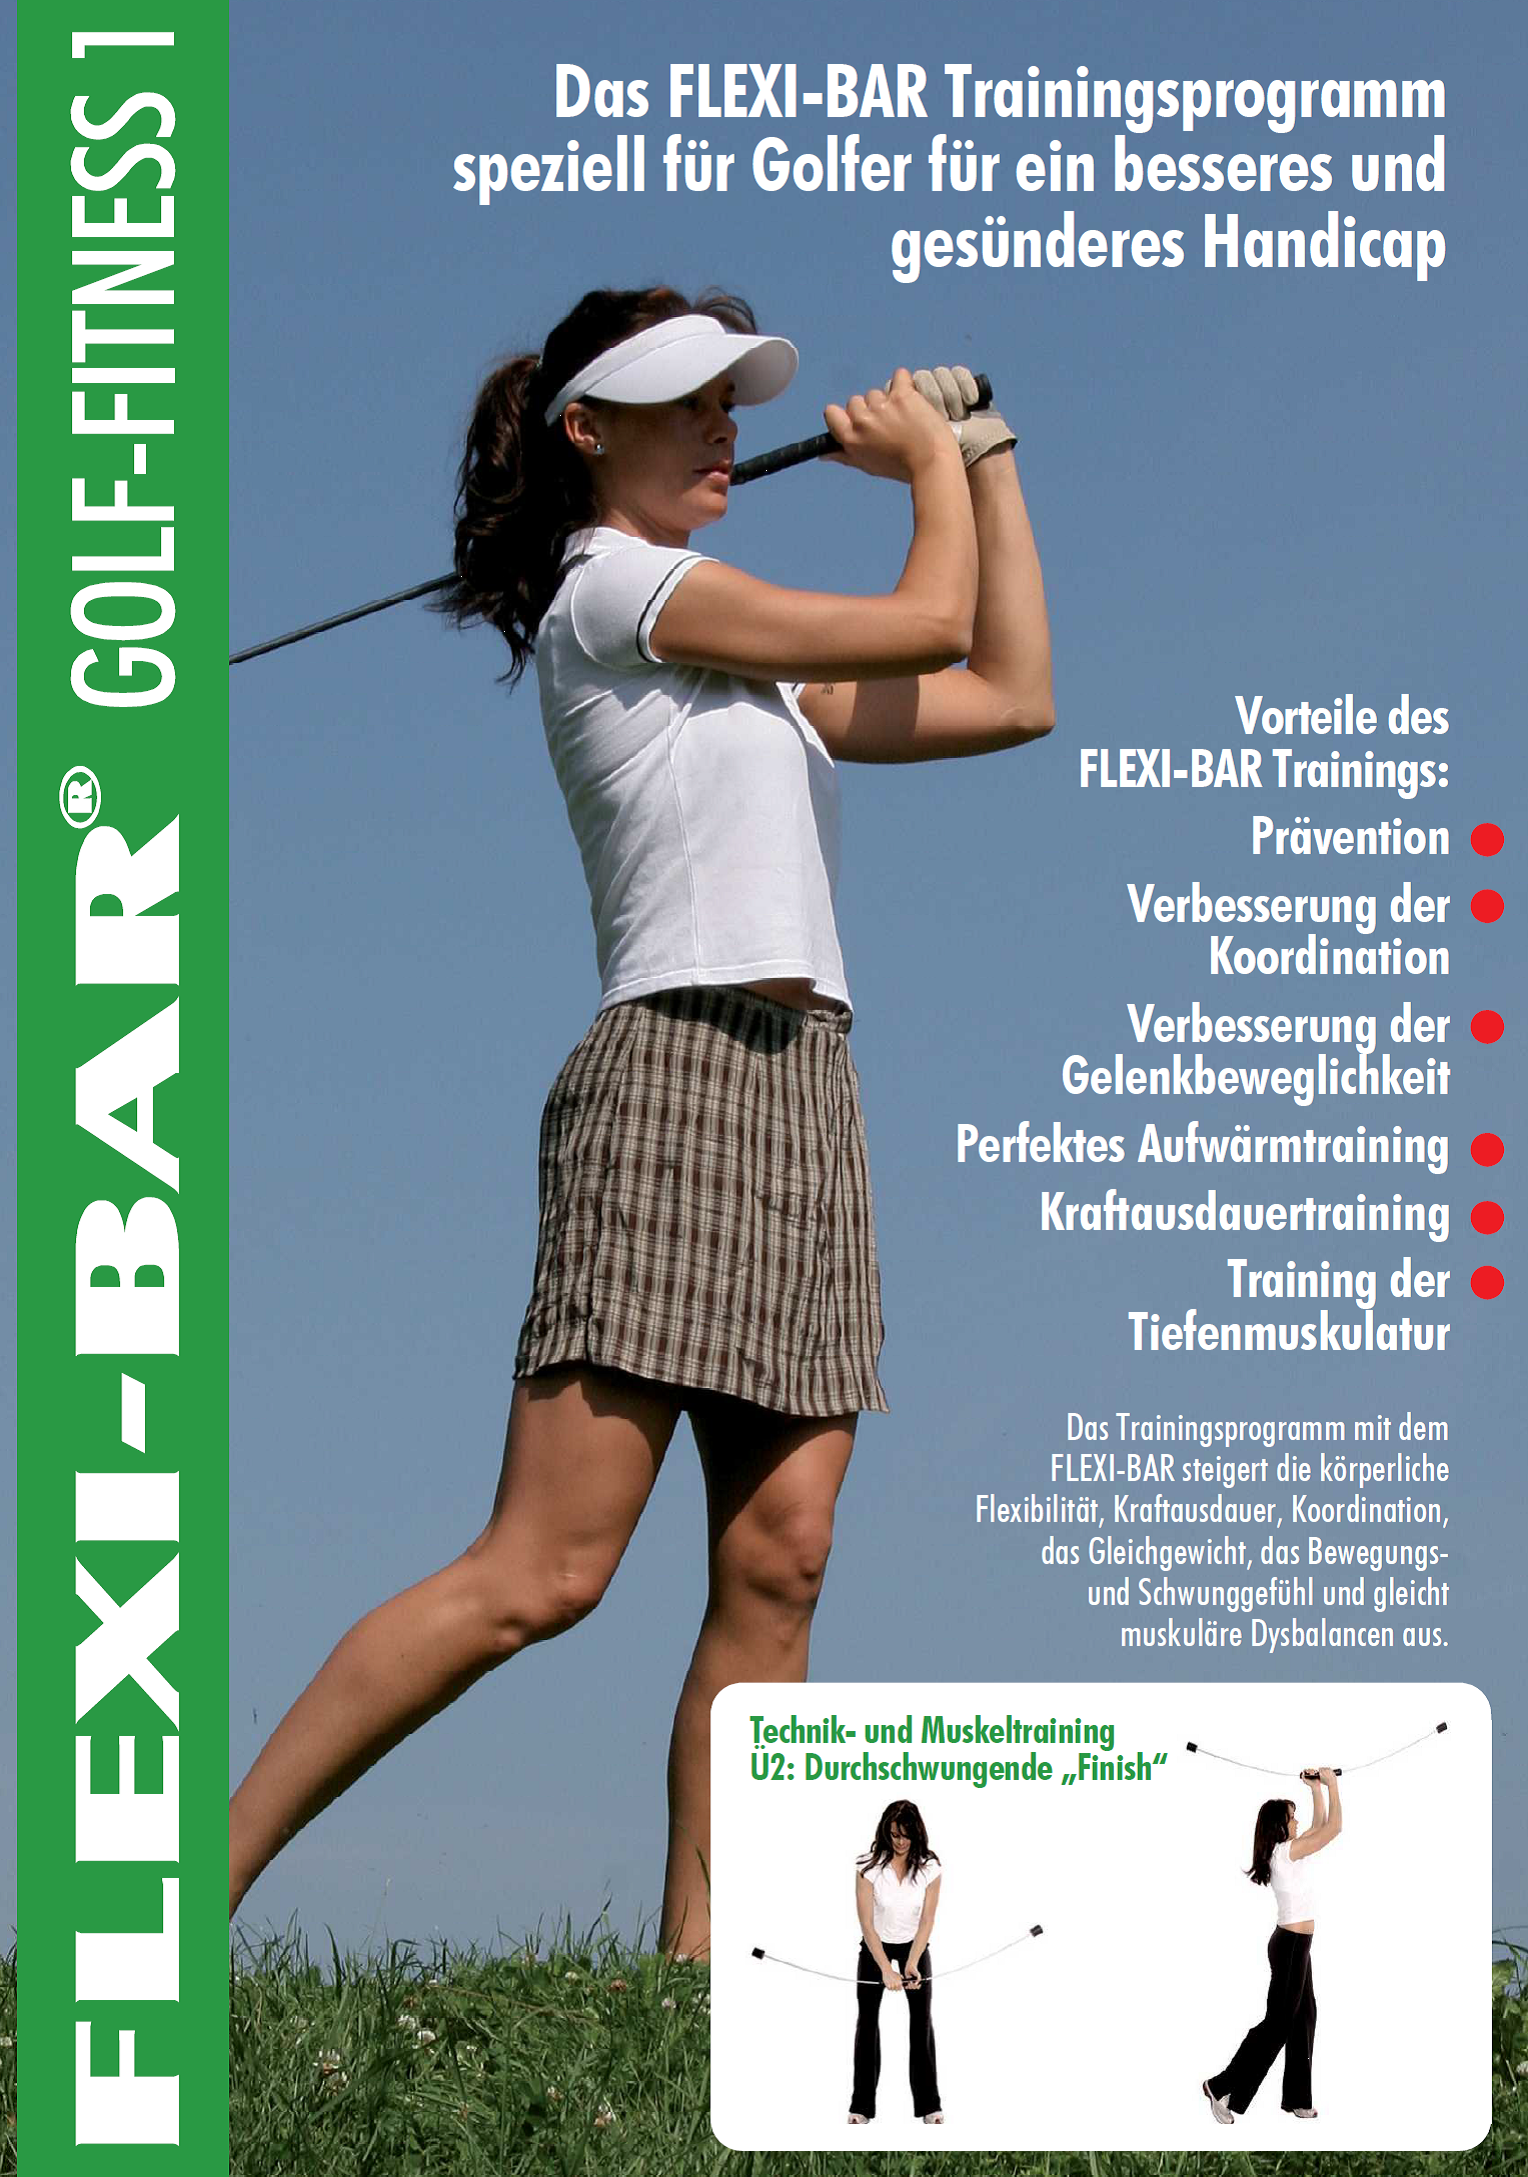 Golftrainingsplan,Flexi bar;Fitness